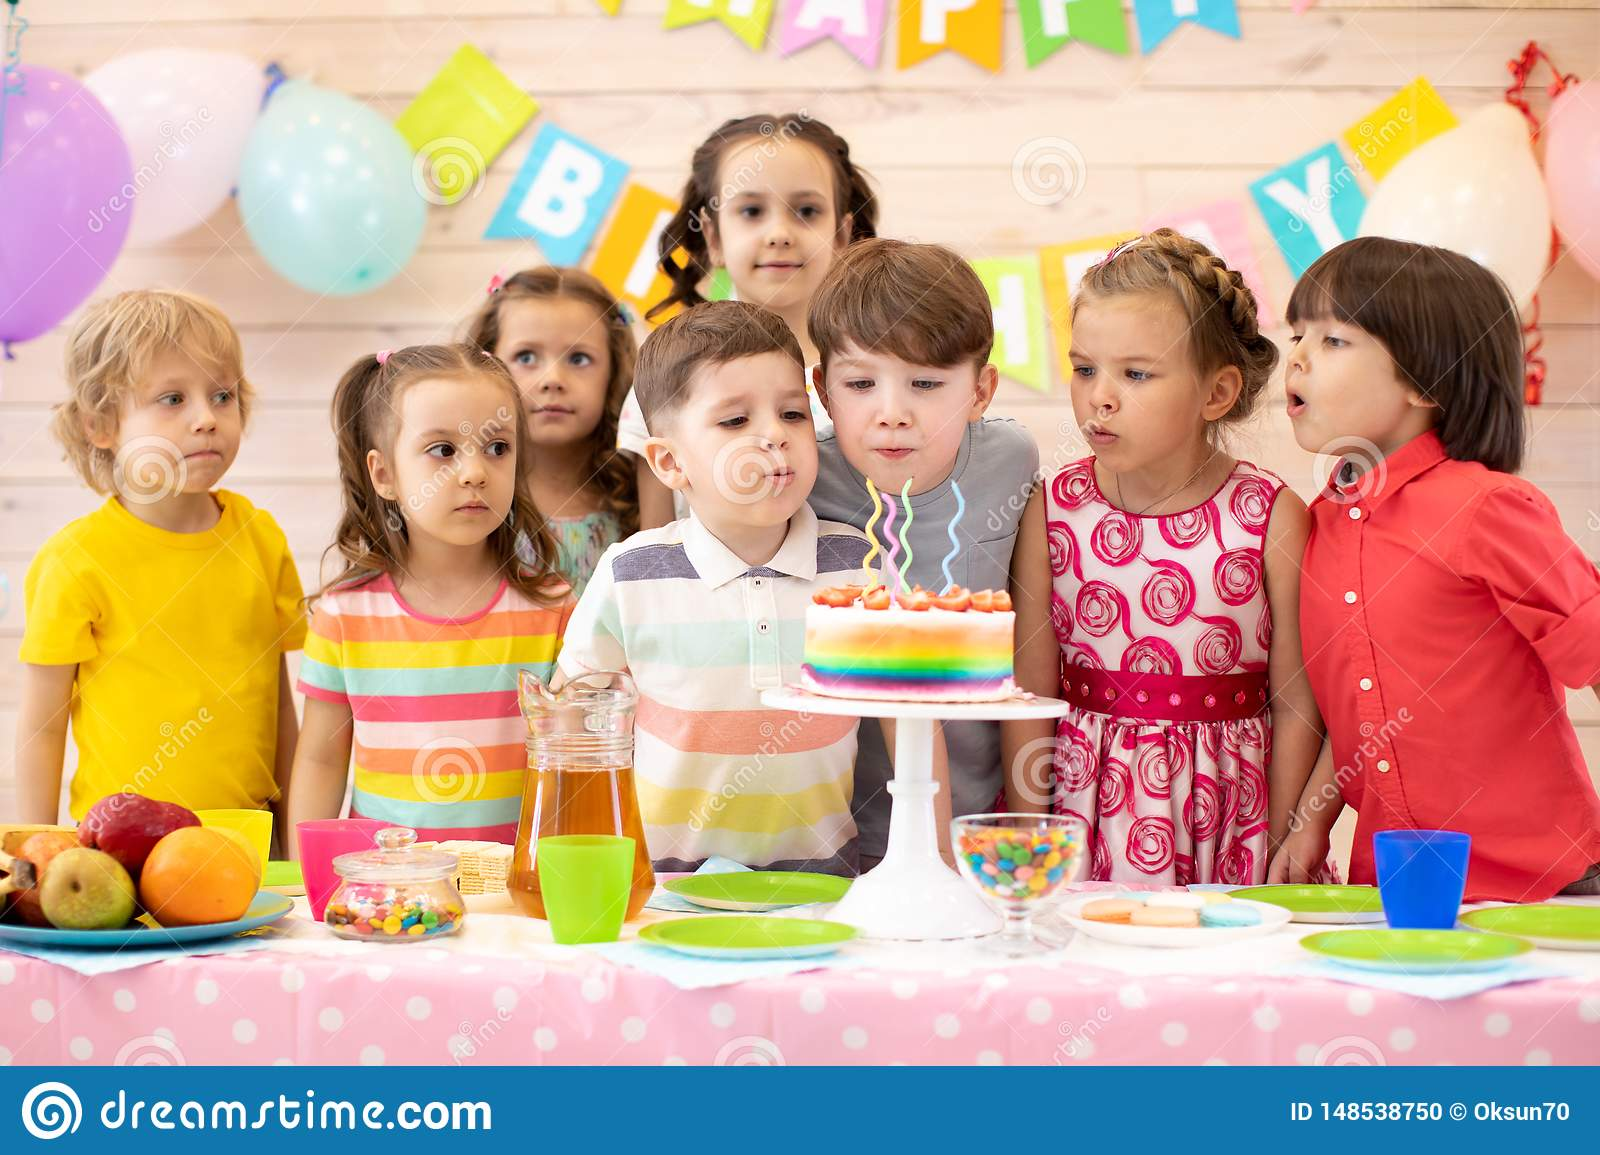 Kids celebrate birthday party and blow candles on festive cake